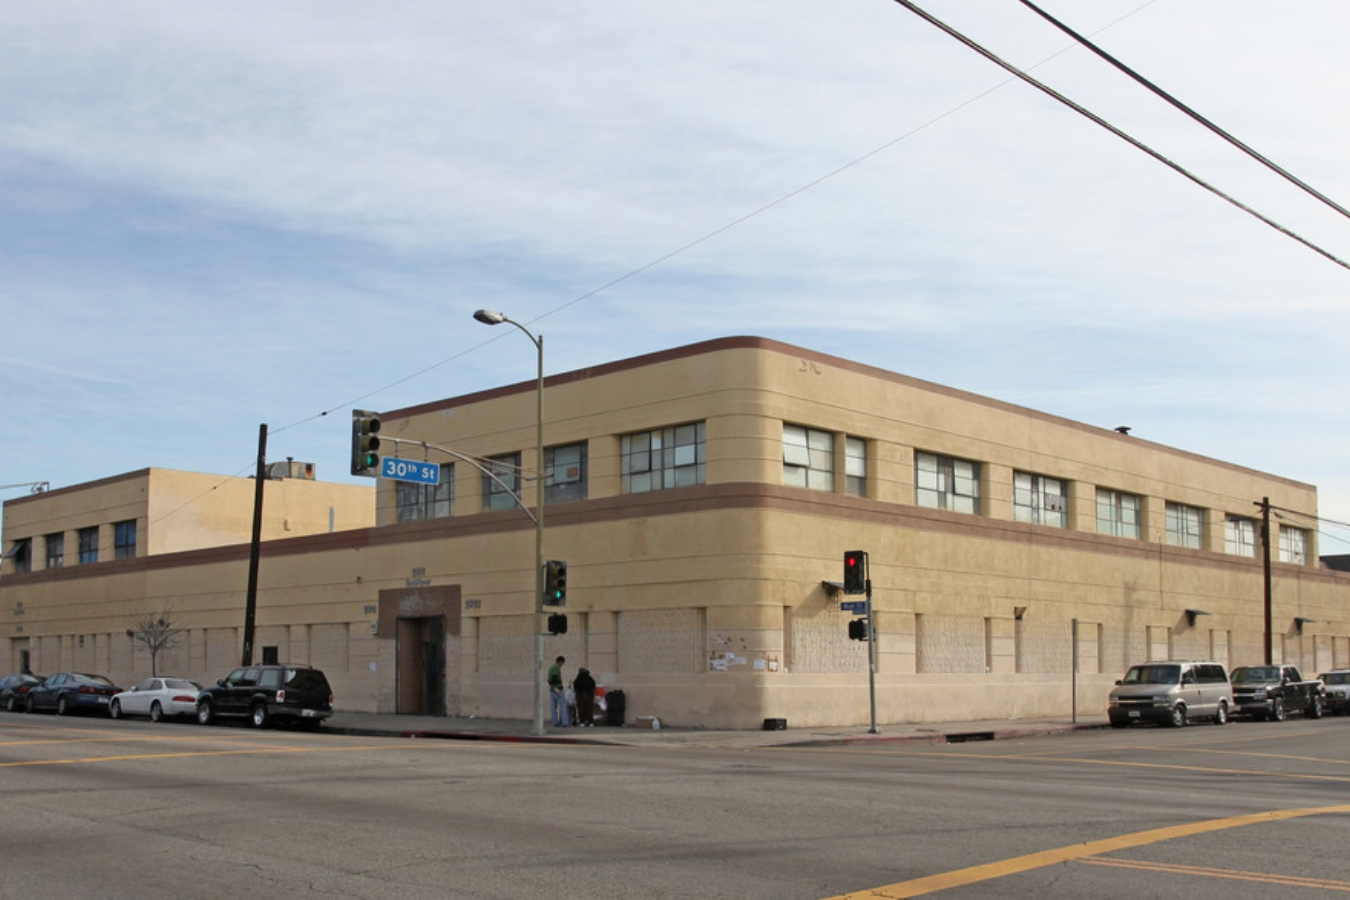 2900-2922 South MAIN STreet, LOS ANGELES, CA 90007 - LEASE RATE: $ 0.70/ SFGLA: +/- 46,250 SF- Faced Lot.- 2nd Floor Unit available for lease!- Perfect for garment manufacturing, sewing, or warehousing!- Located on the corner of Main and 30th.